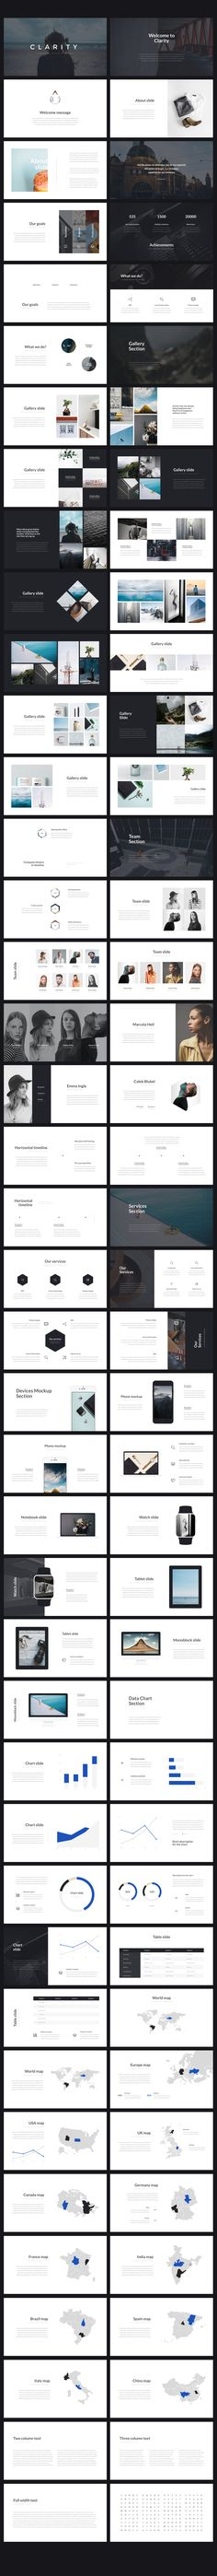 Tahu Powerpoint Template   New Design     Template